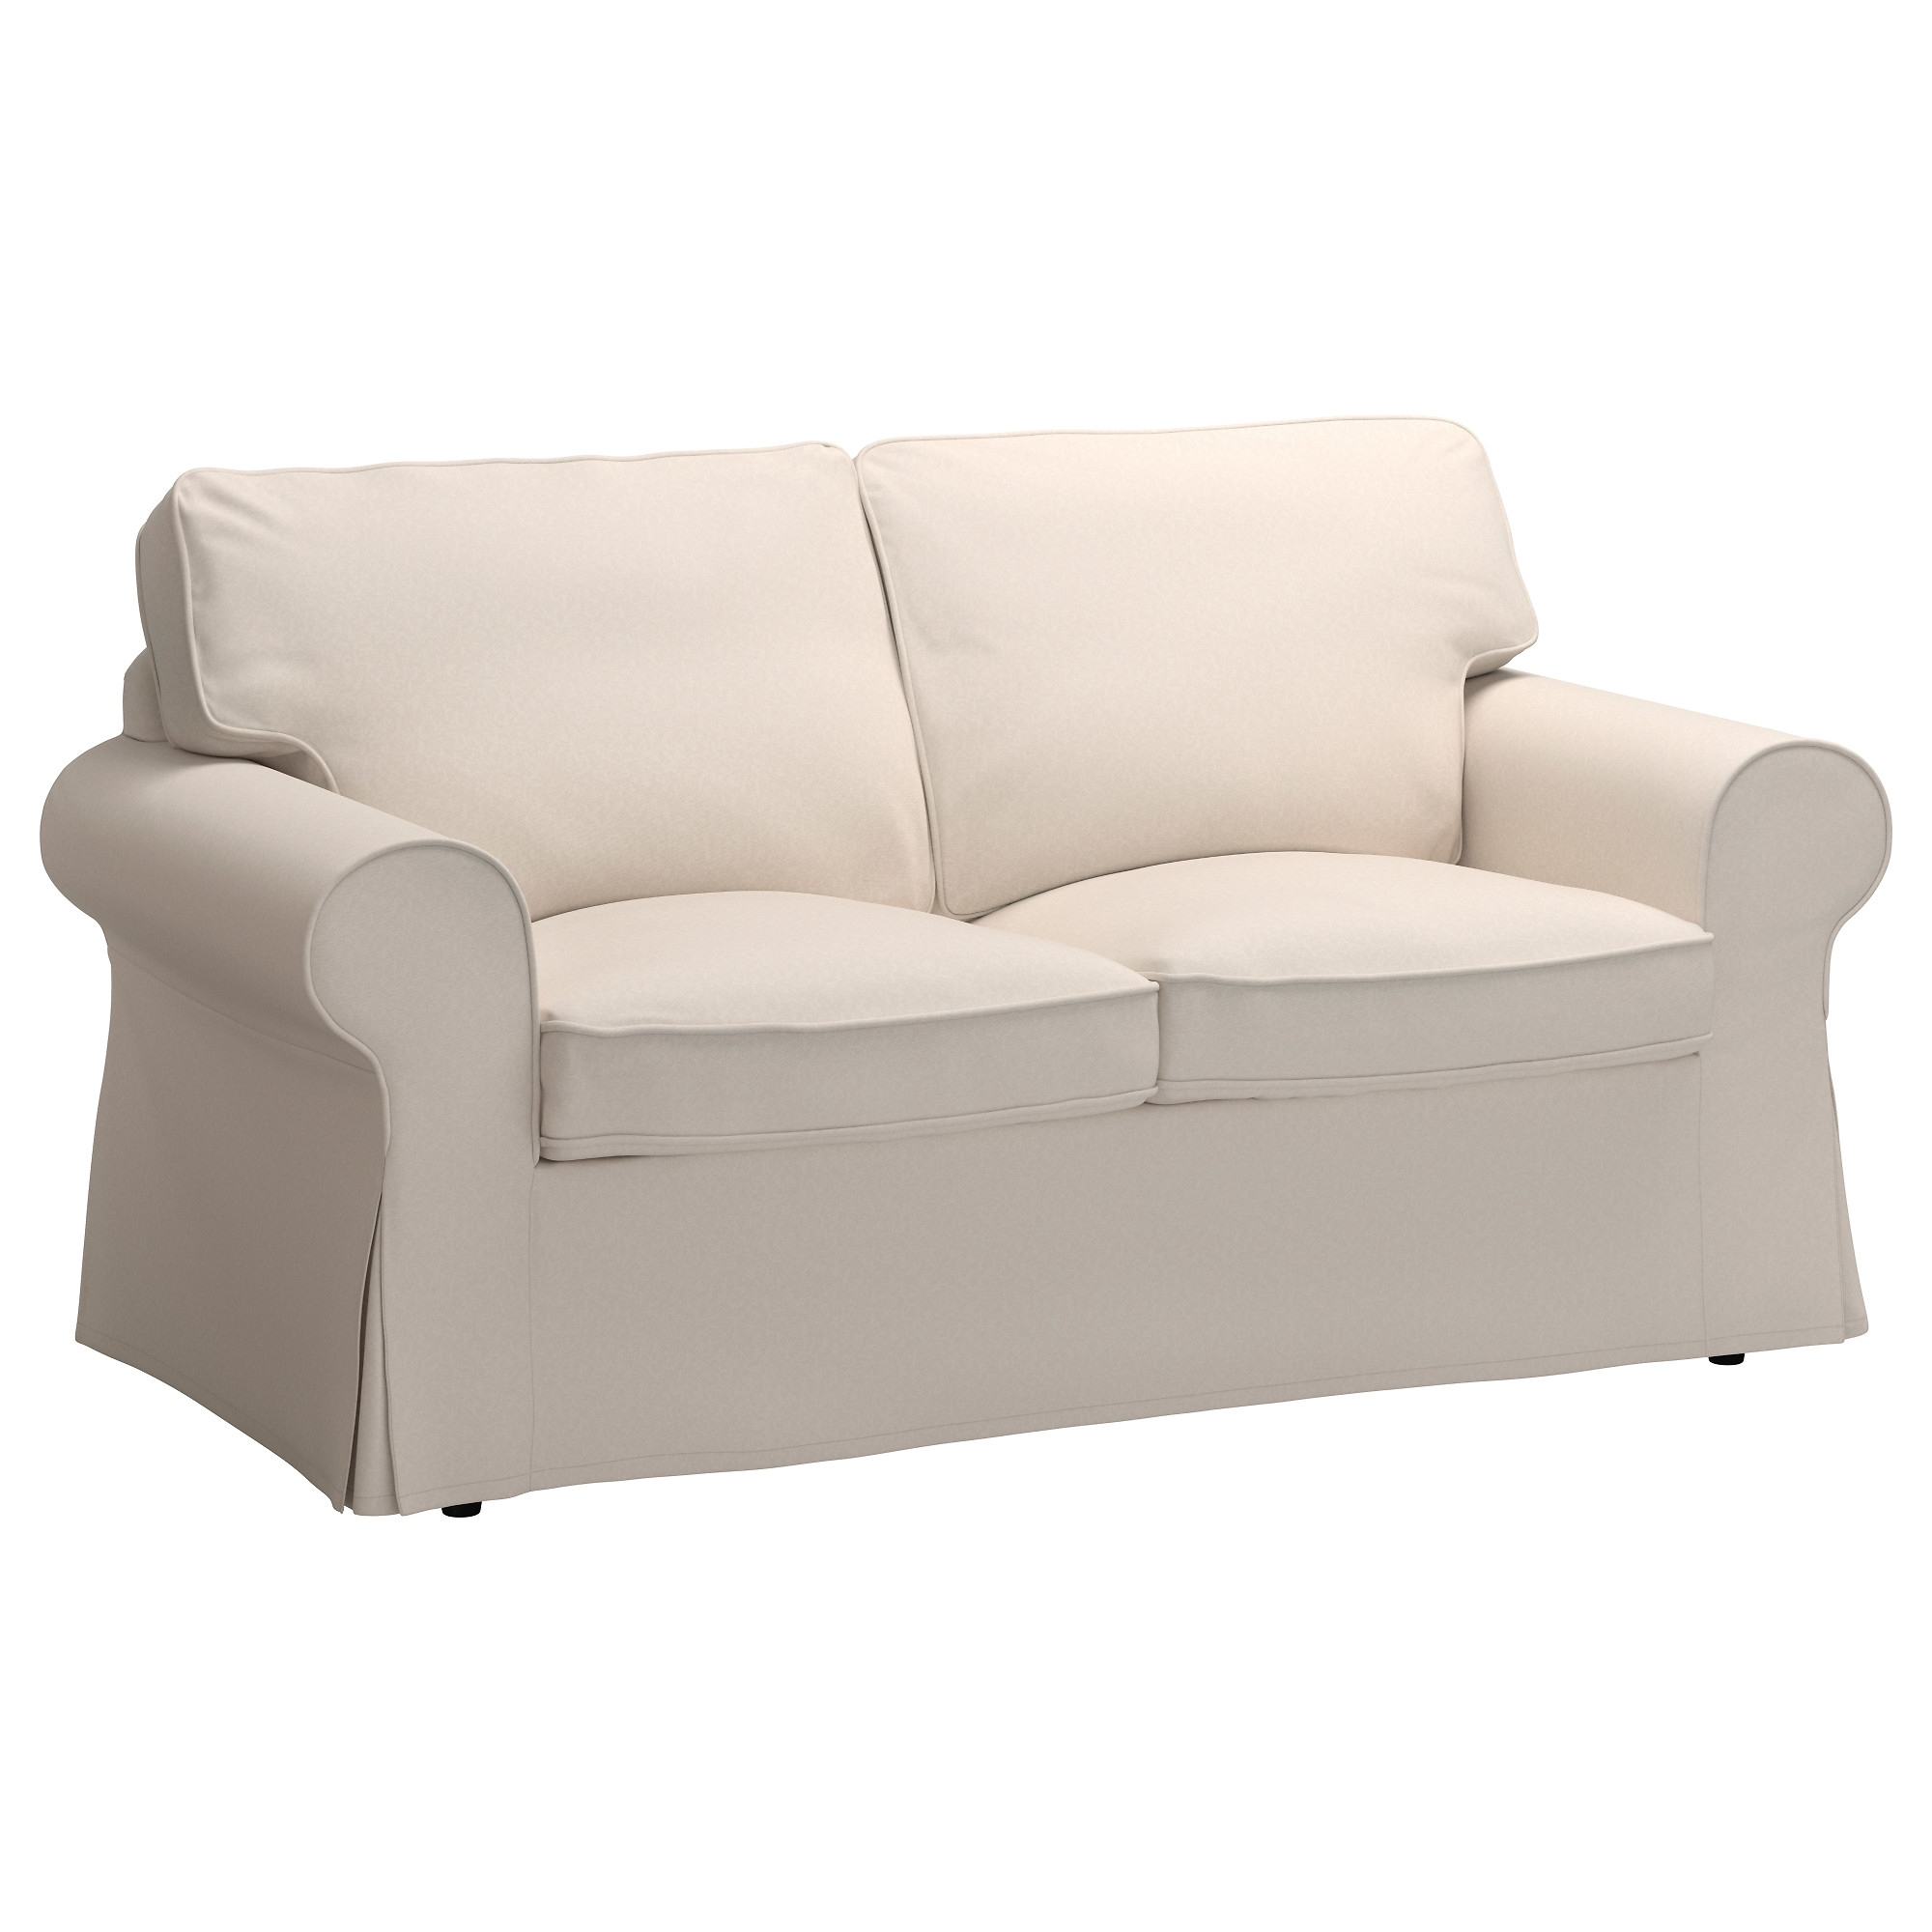 Ikea Two Seater Sofas Within Most Current Ektorp Two Seat Sofa – Lofallet Beige – Ikea (View 11 of 15)